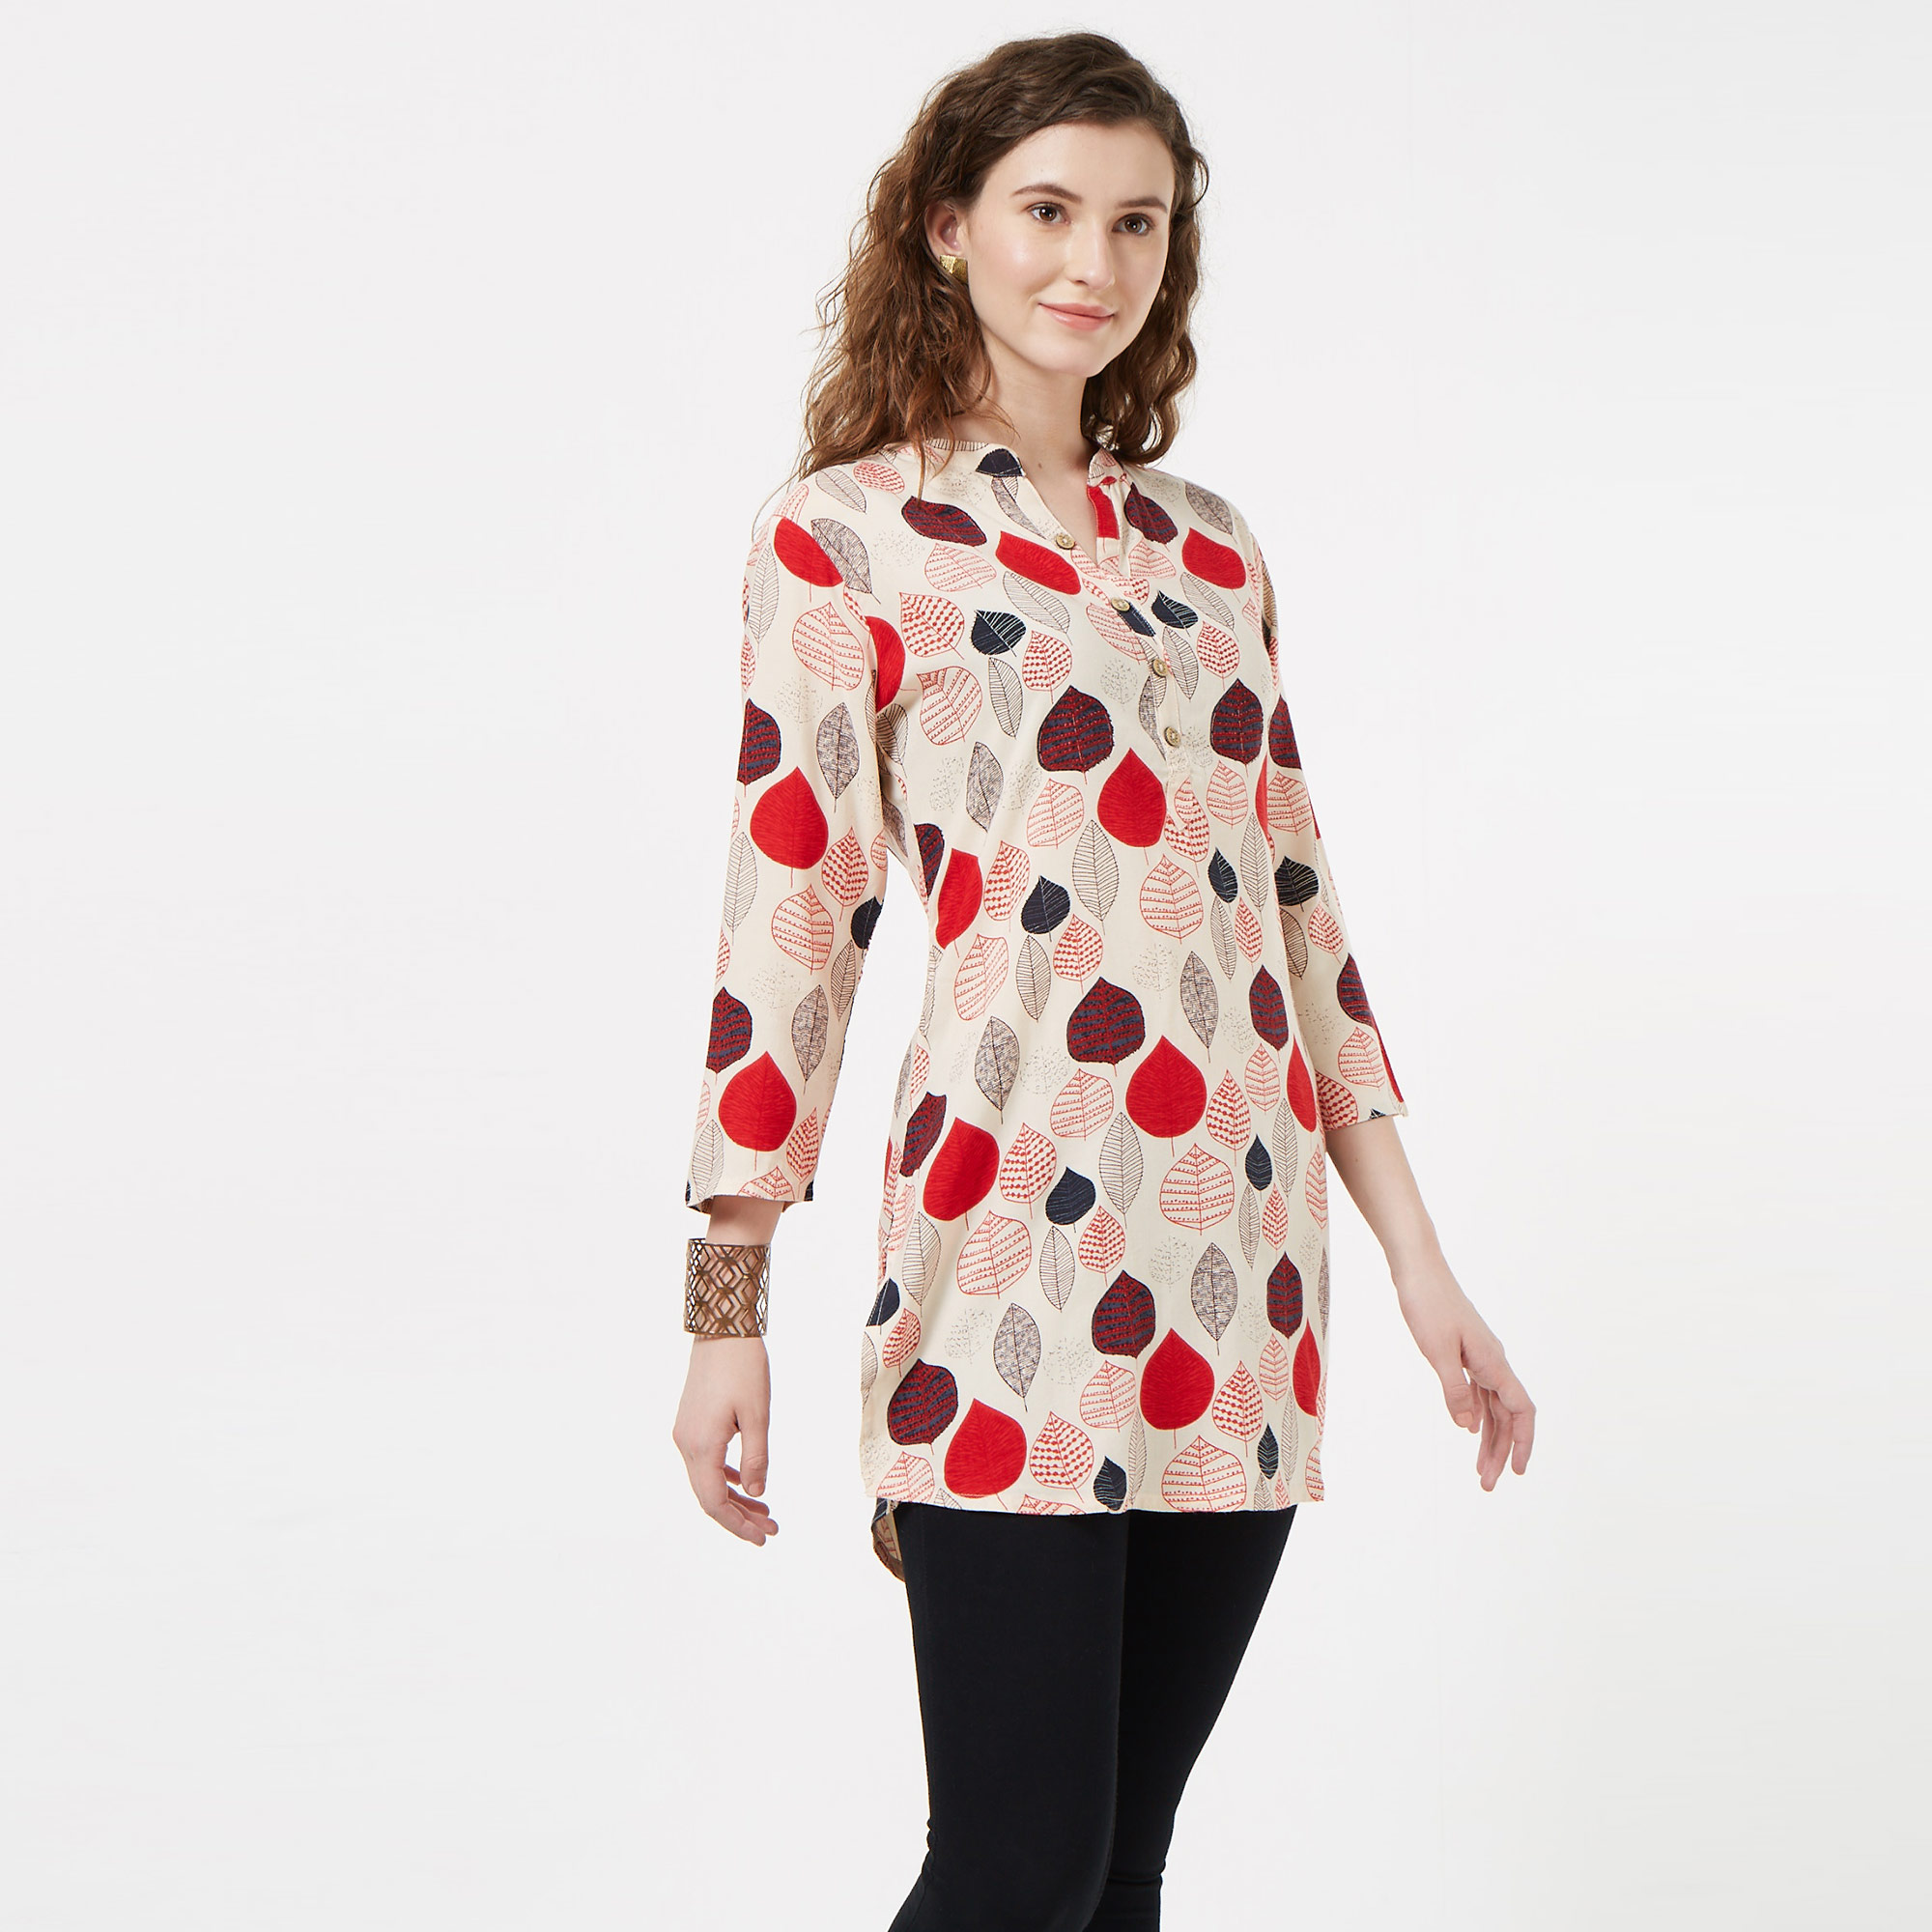 Classy Off White Colored Casual Printed Rayon Top